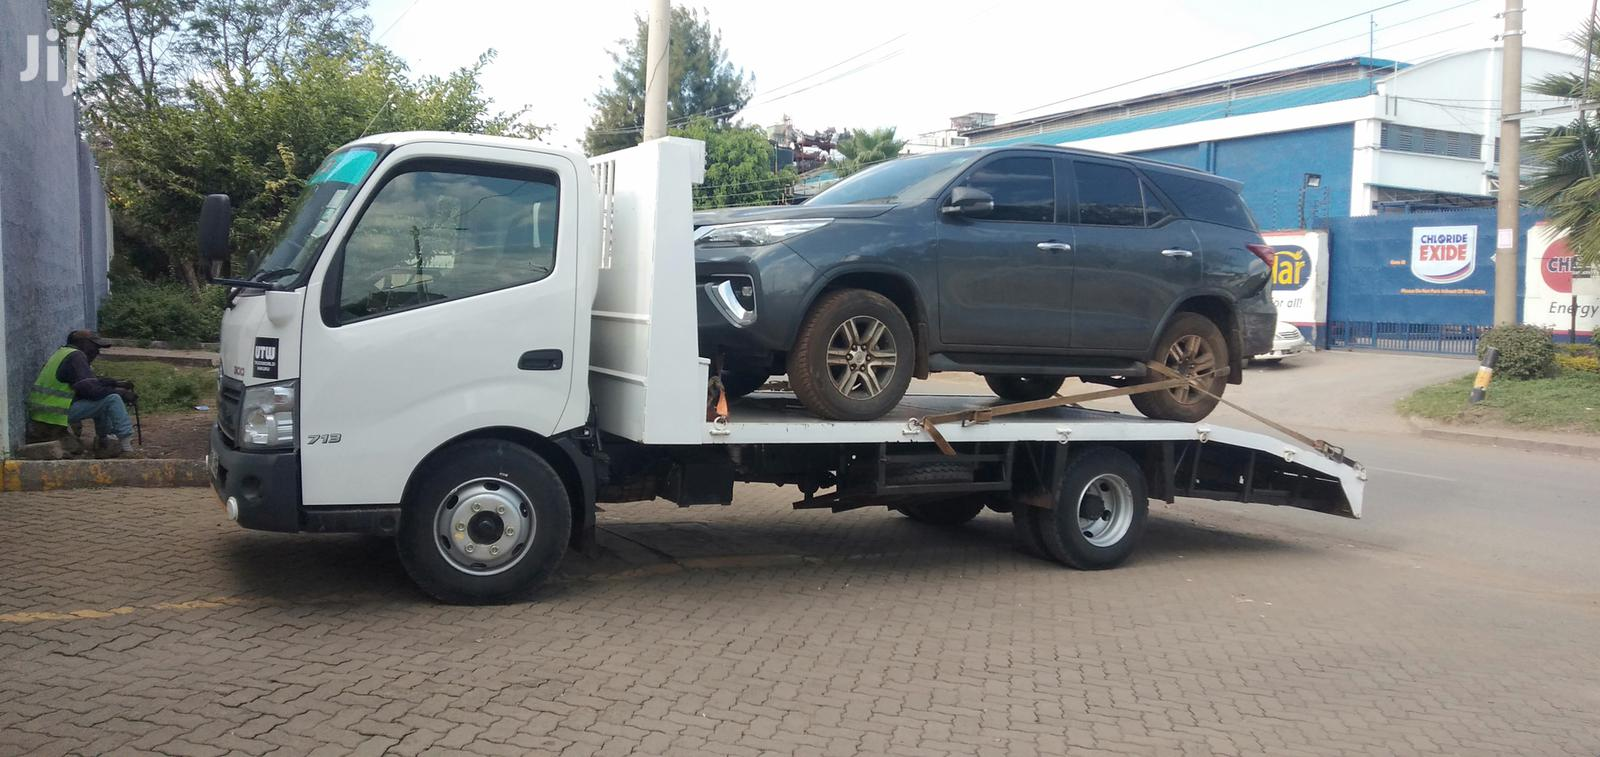 Special Towing And Recovery, Breakdown And Rescue | Automotive Services for sale in Kilimani, Nairobi, Kenya